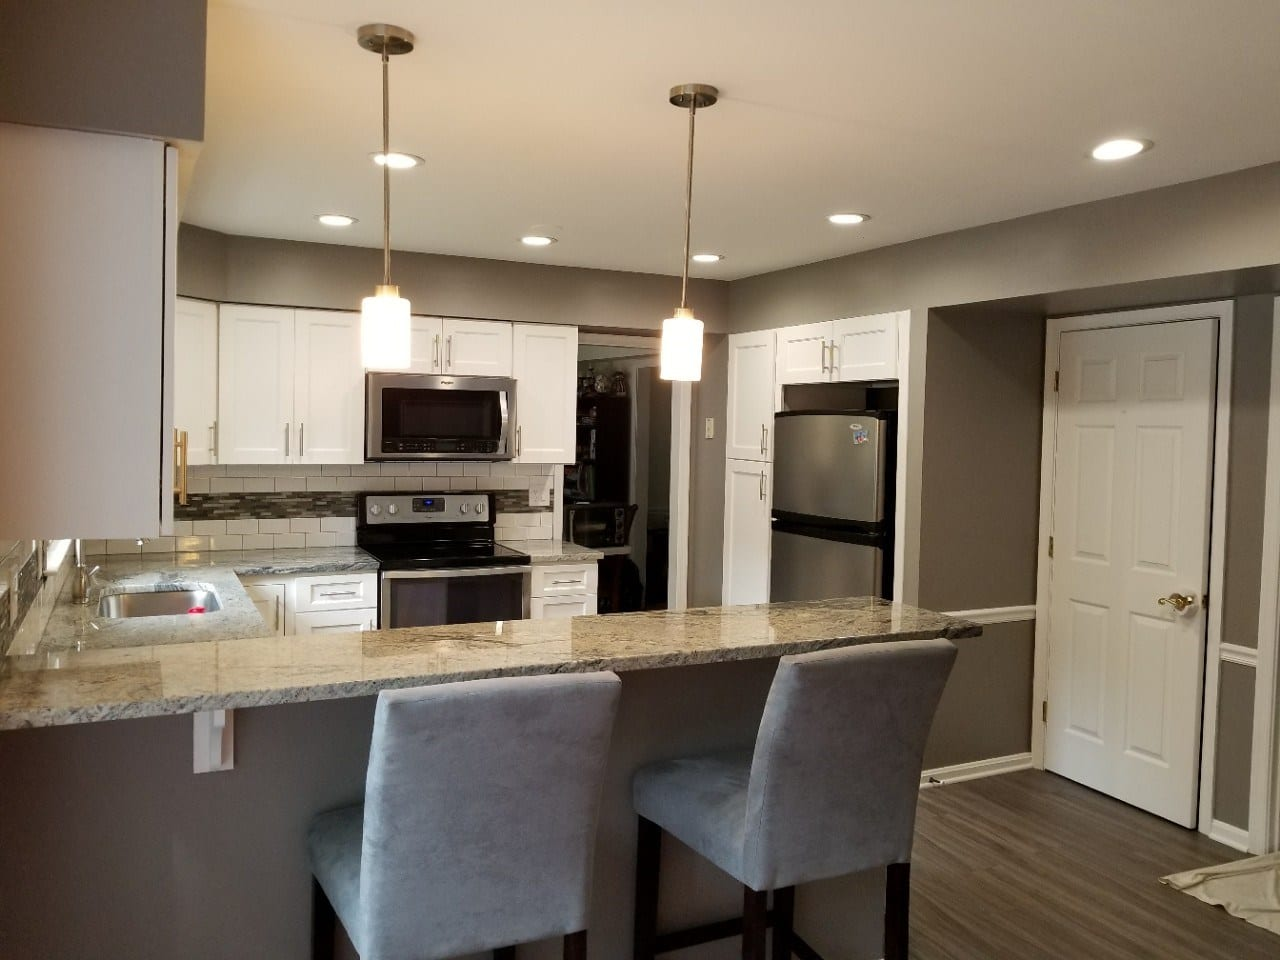 Low Cost Kitchen Remodeling Baltimore | TradeMark Construction